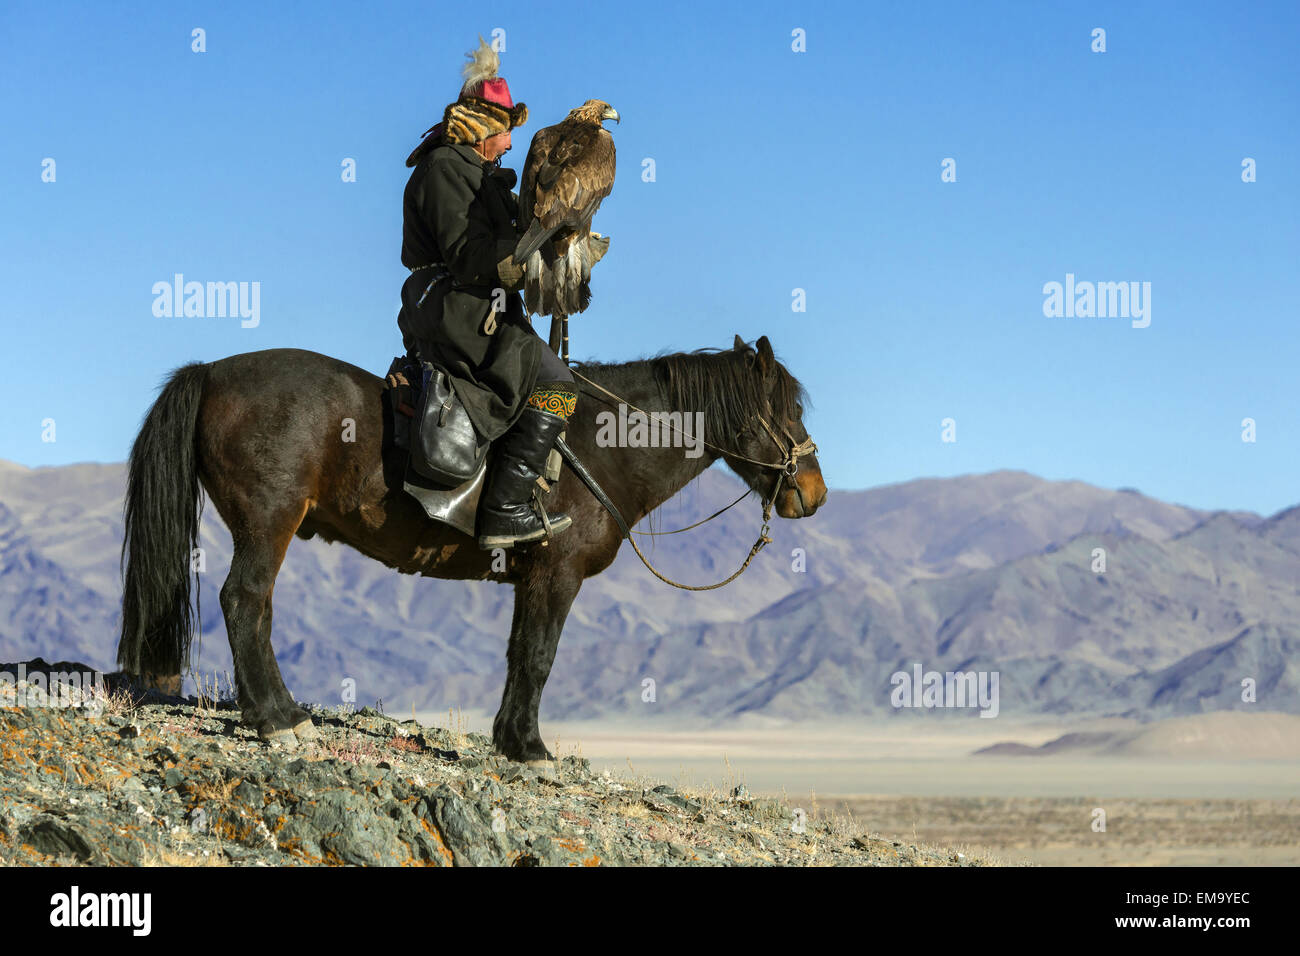 Kazakh eagle hunter about to let his eagle fly, Western Mongolia - Stock Image